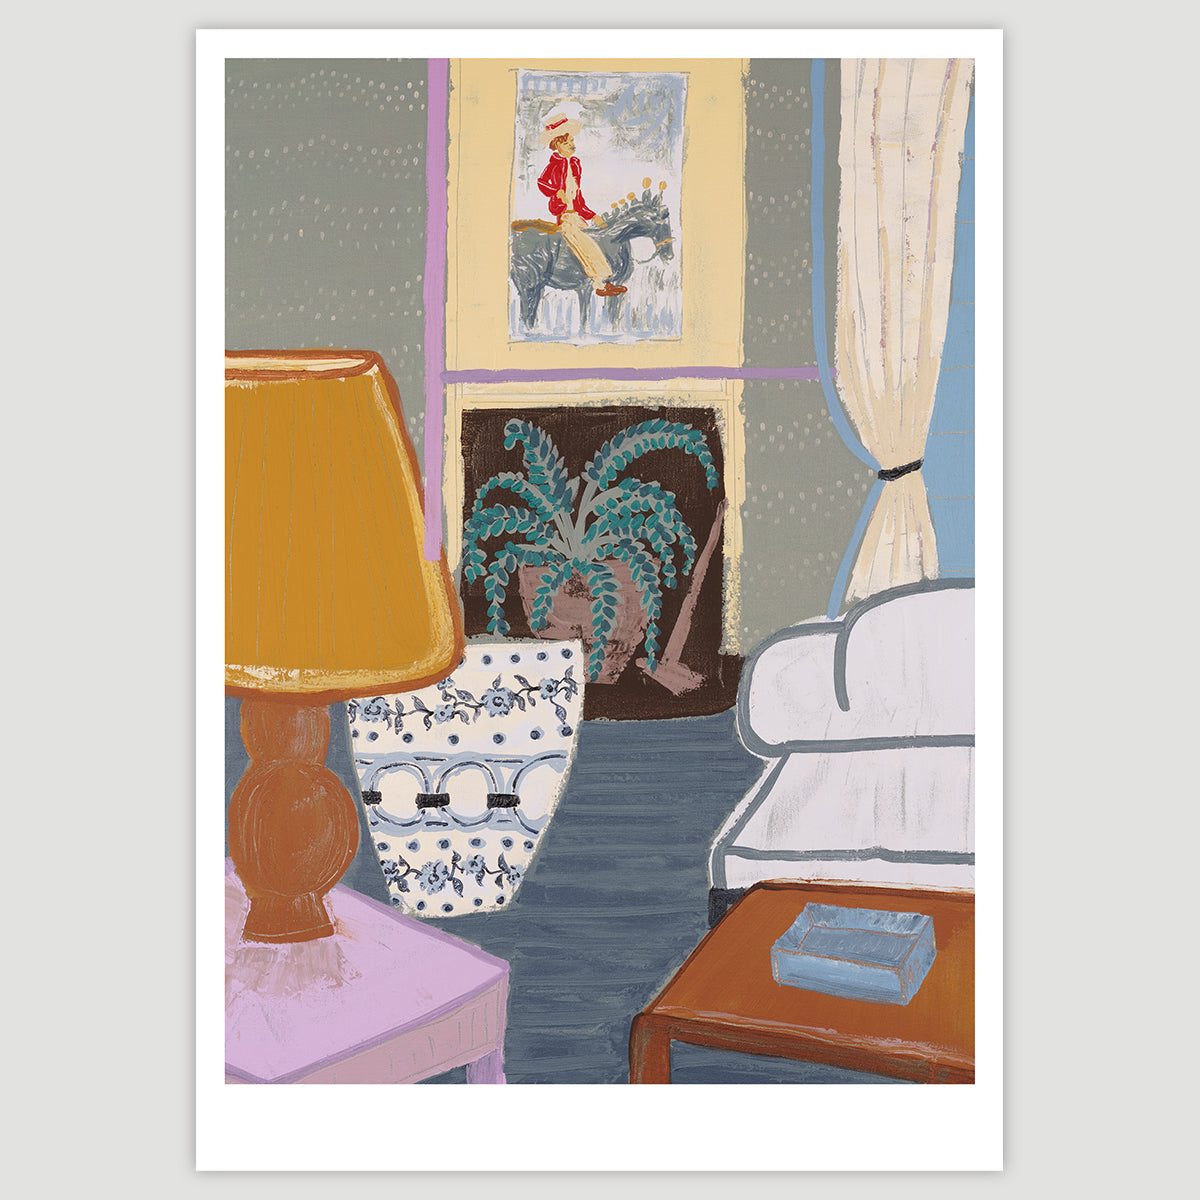 Living Room with Portrait Painting (A2 art print, hand-signed)